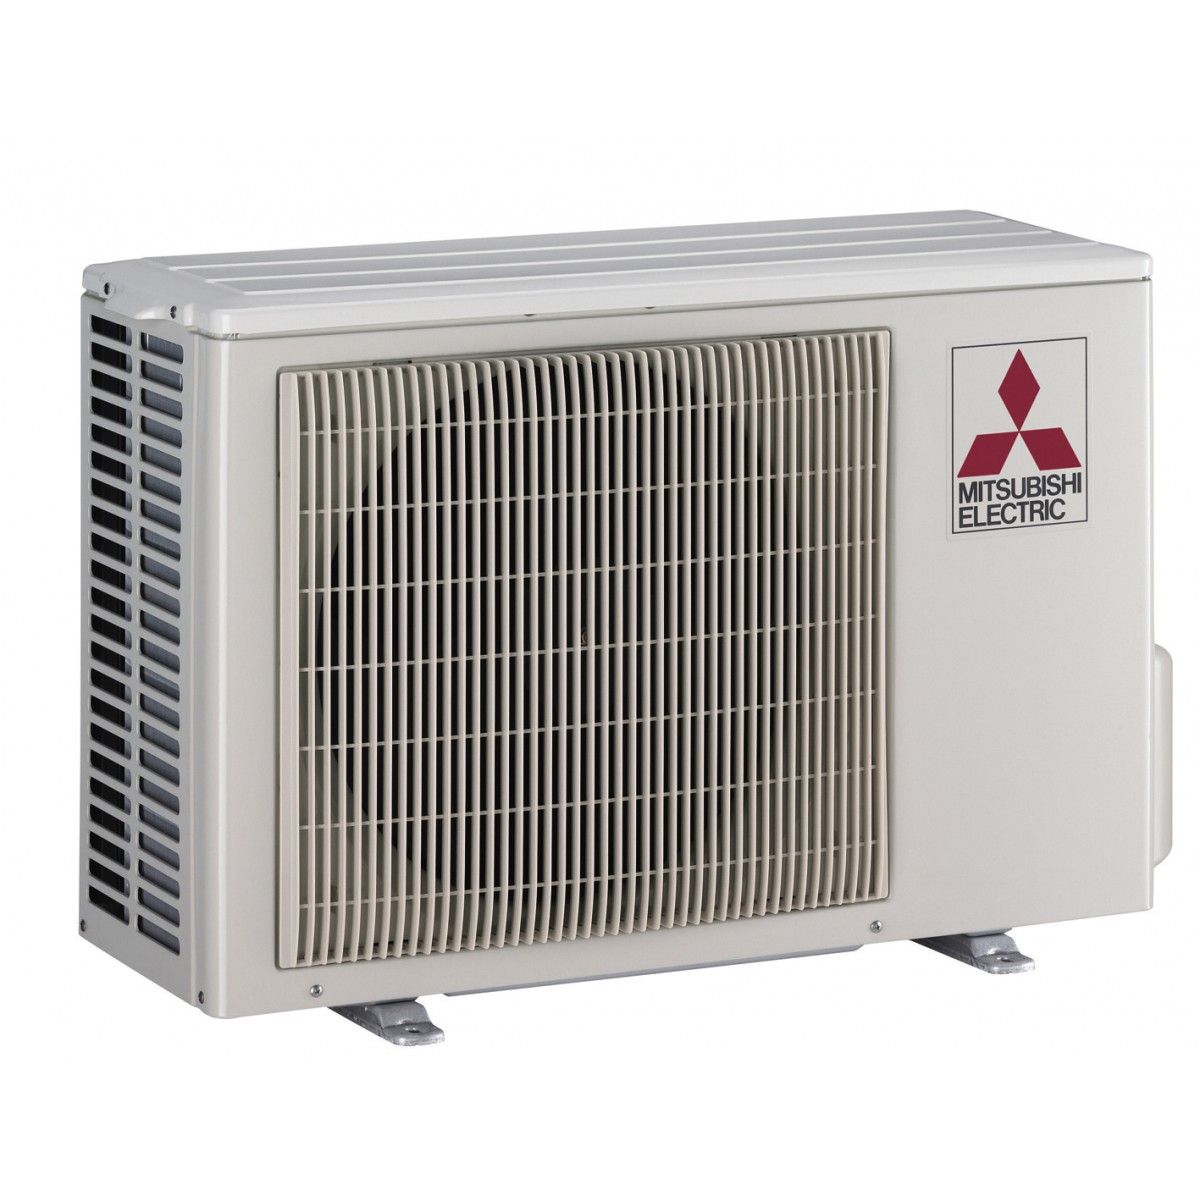 #693E42 9K BTU MItsubishi MUZGL Heat Pump Outdoor Unit In Ductless AC Most Effective 3335 Heat Pump Ac Units pictures with 1200x1200 px on helpvideos.info - Air Conditioners, Air Coolers and more